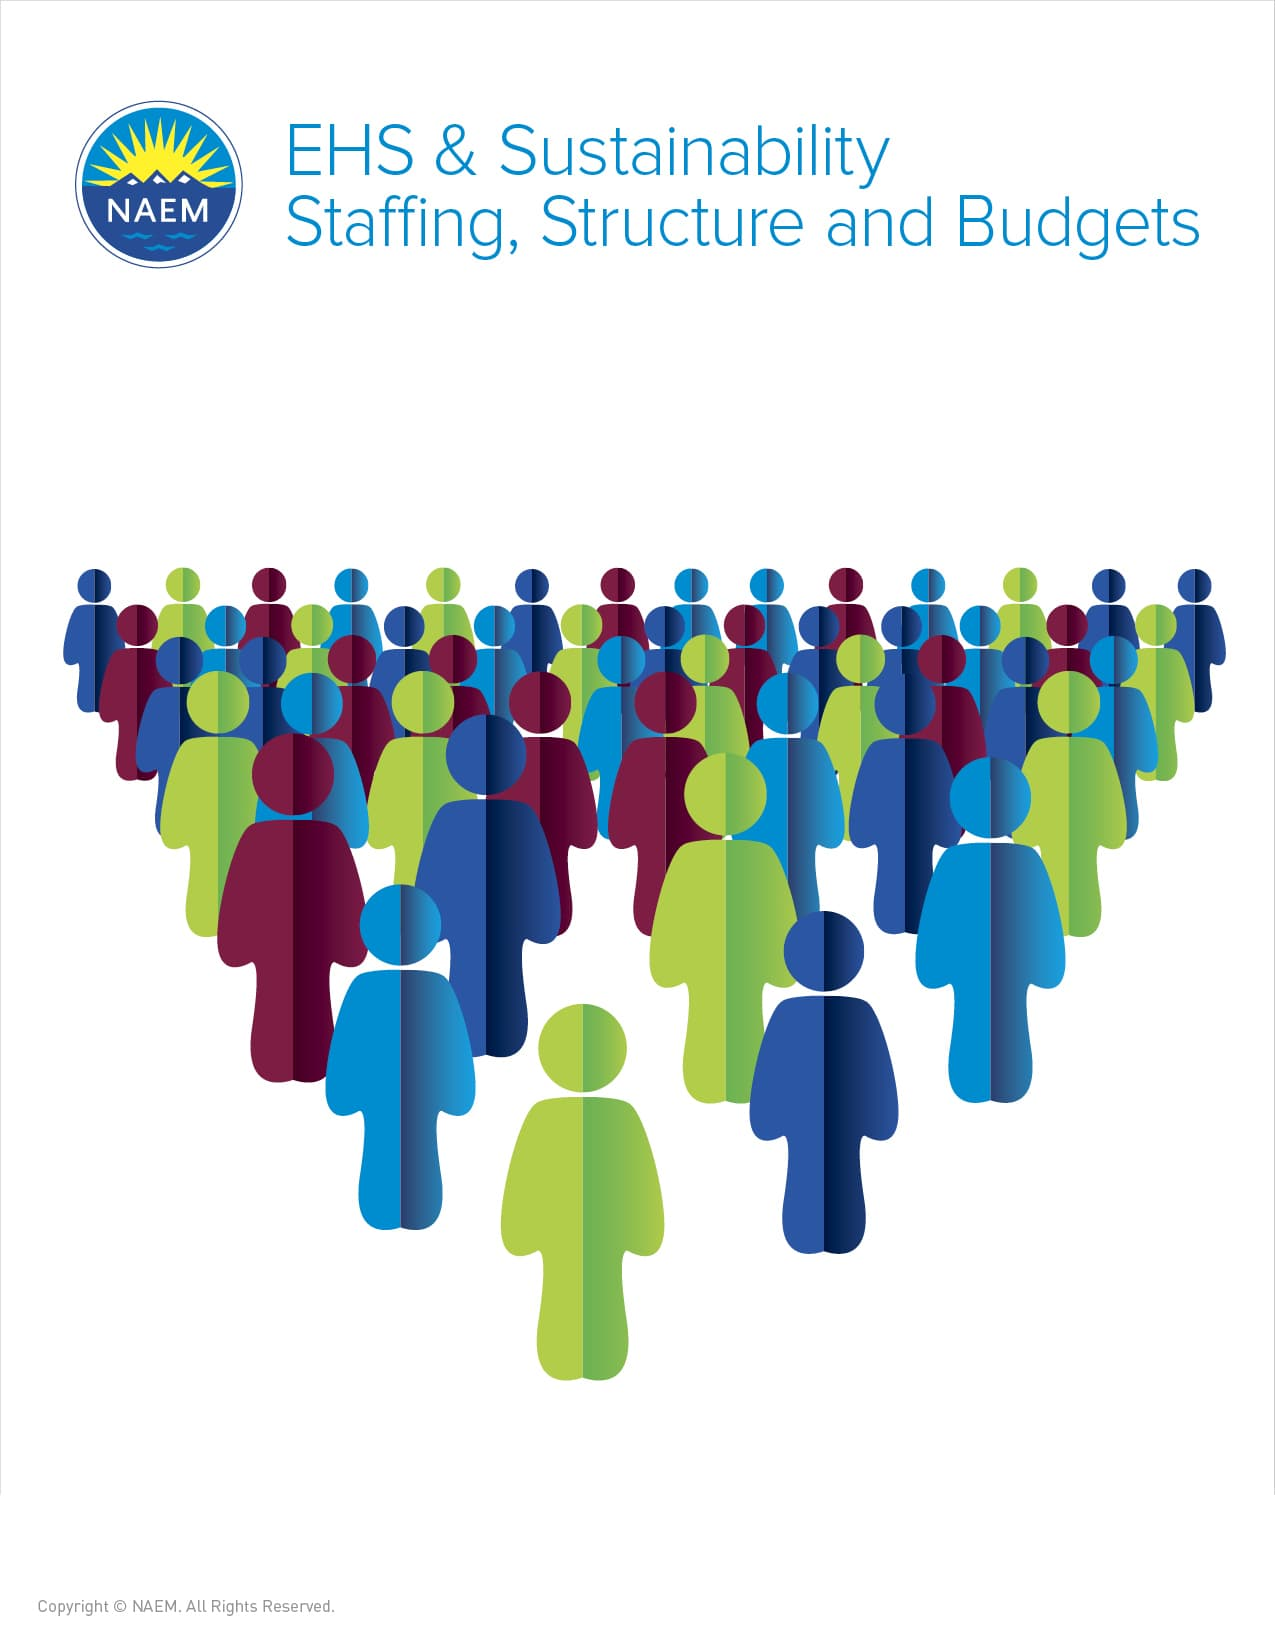 naem-research-reports-2016-ehs-and-sustainability-staffing-structure-and-budgets-benchmark-1560x2010